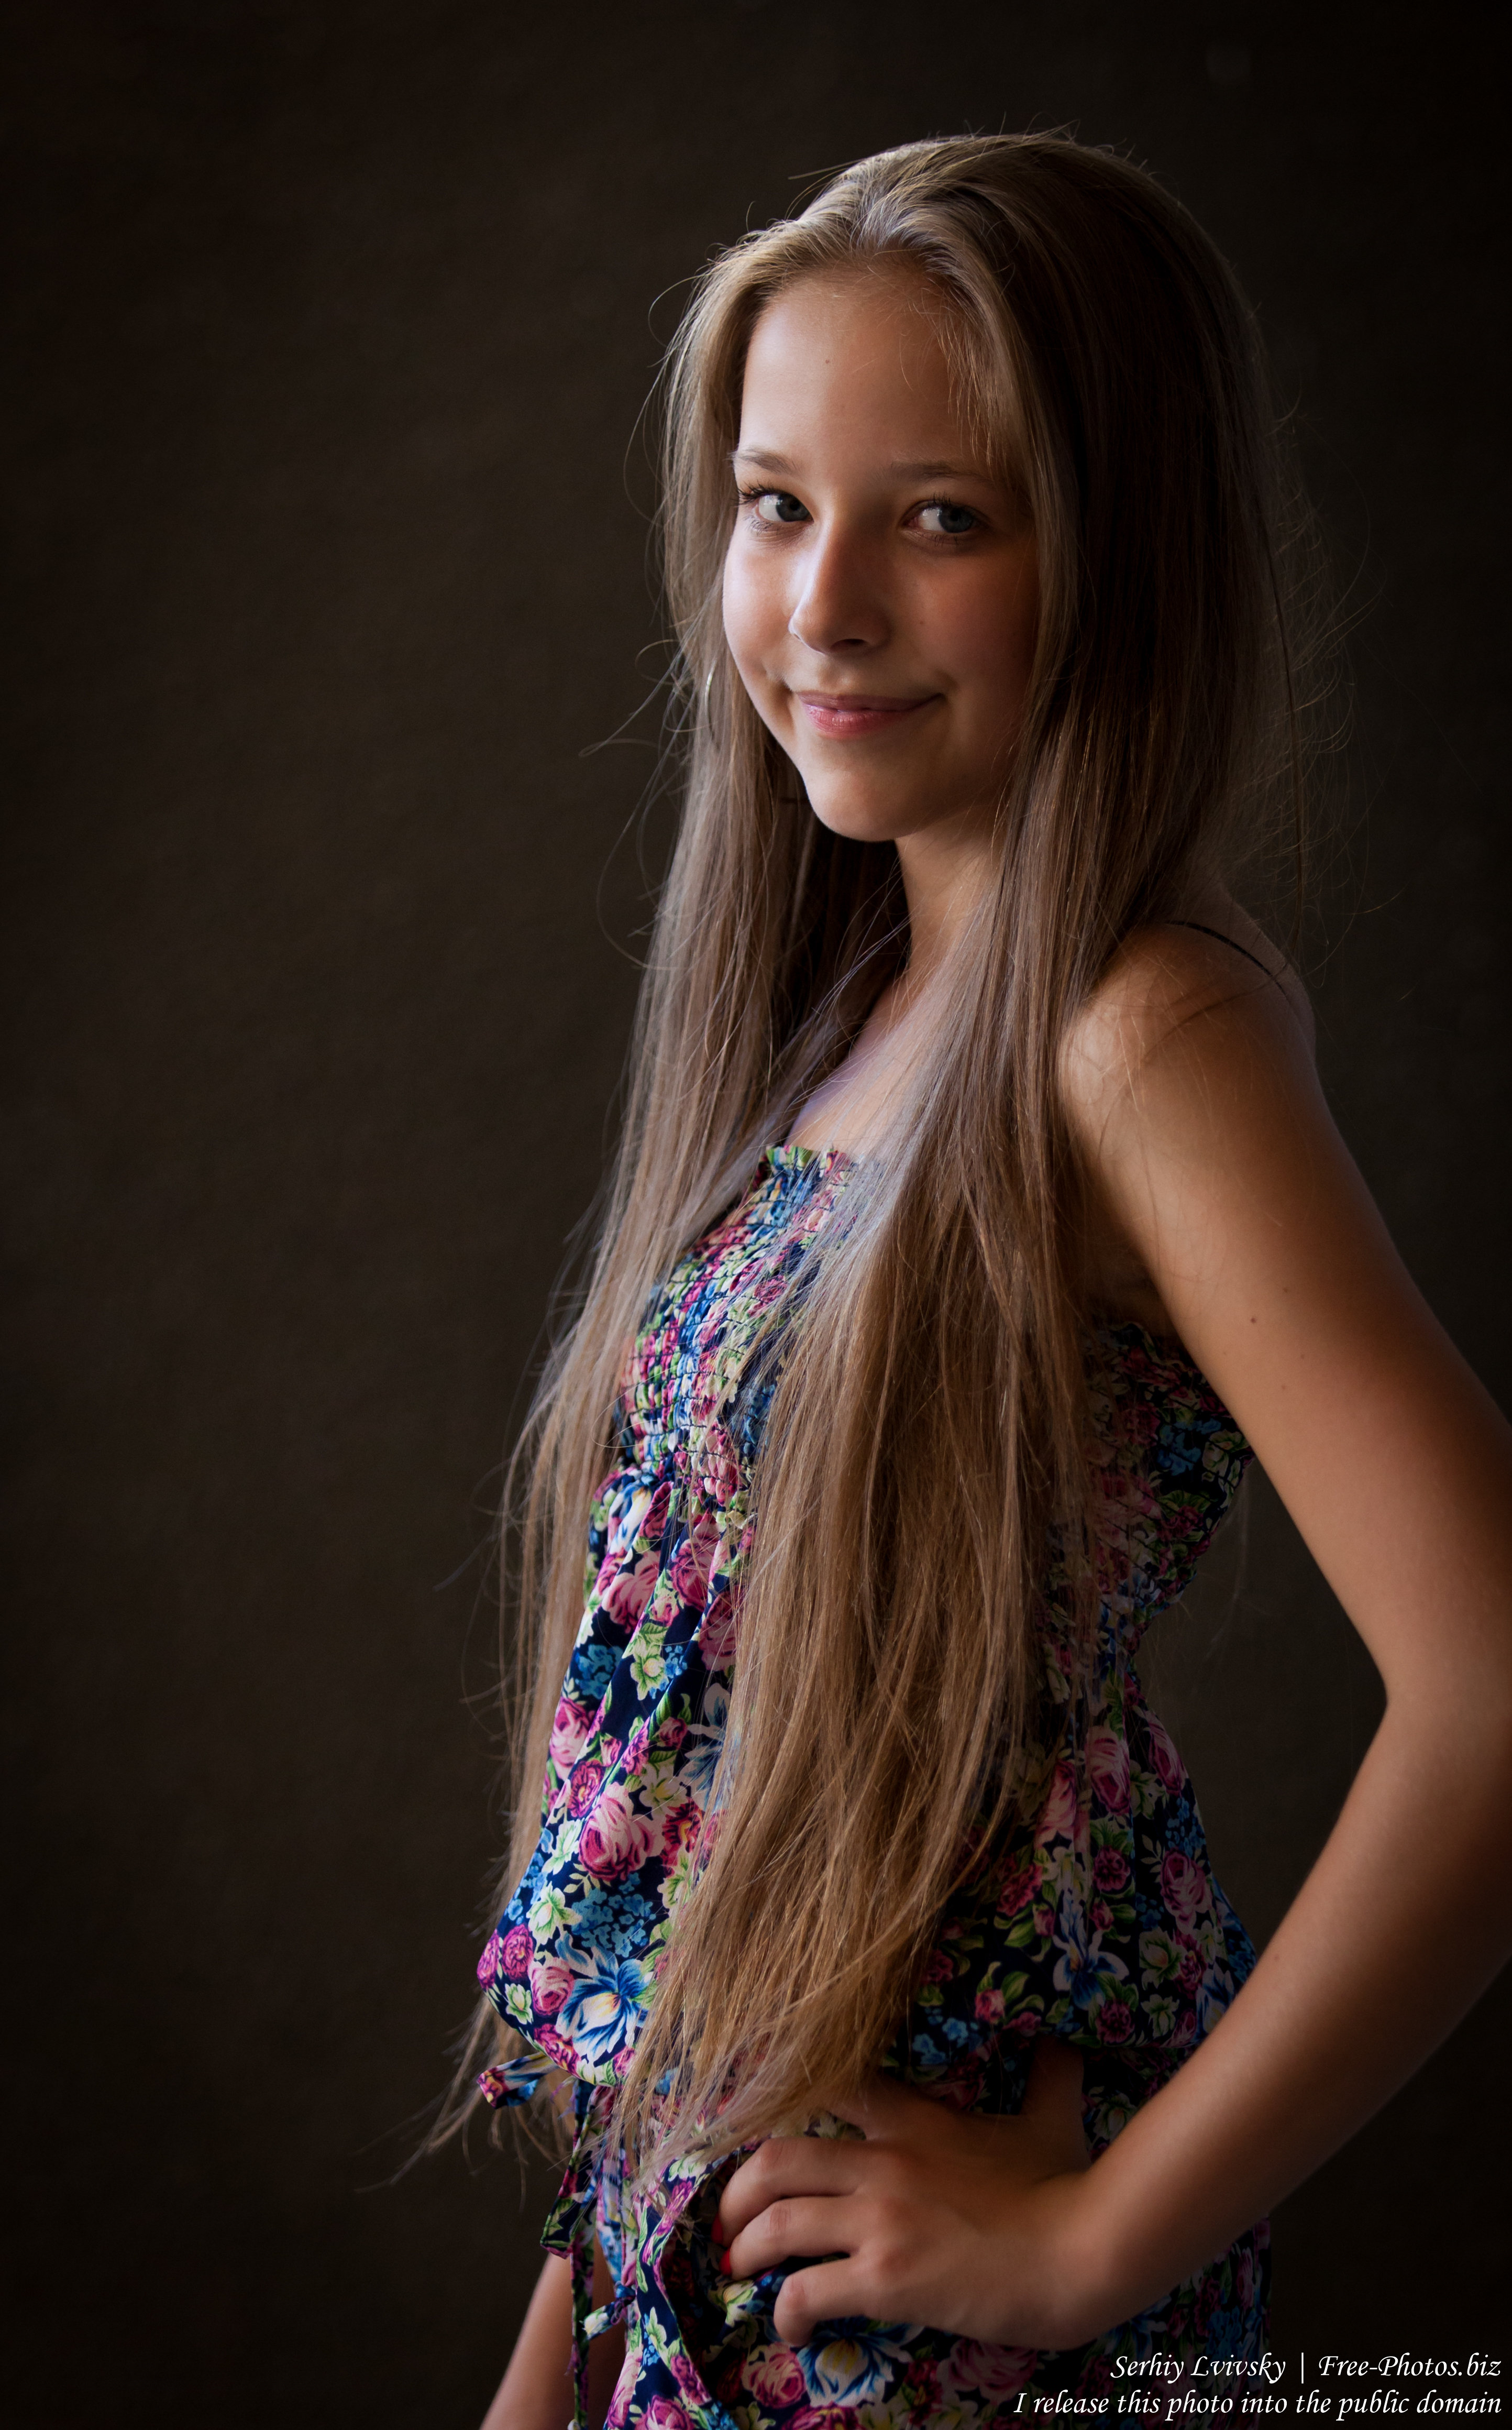 a pretty 13-year-old girl photographed in July 2015 by Serhiy Lvivsky, picture 8